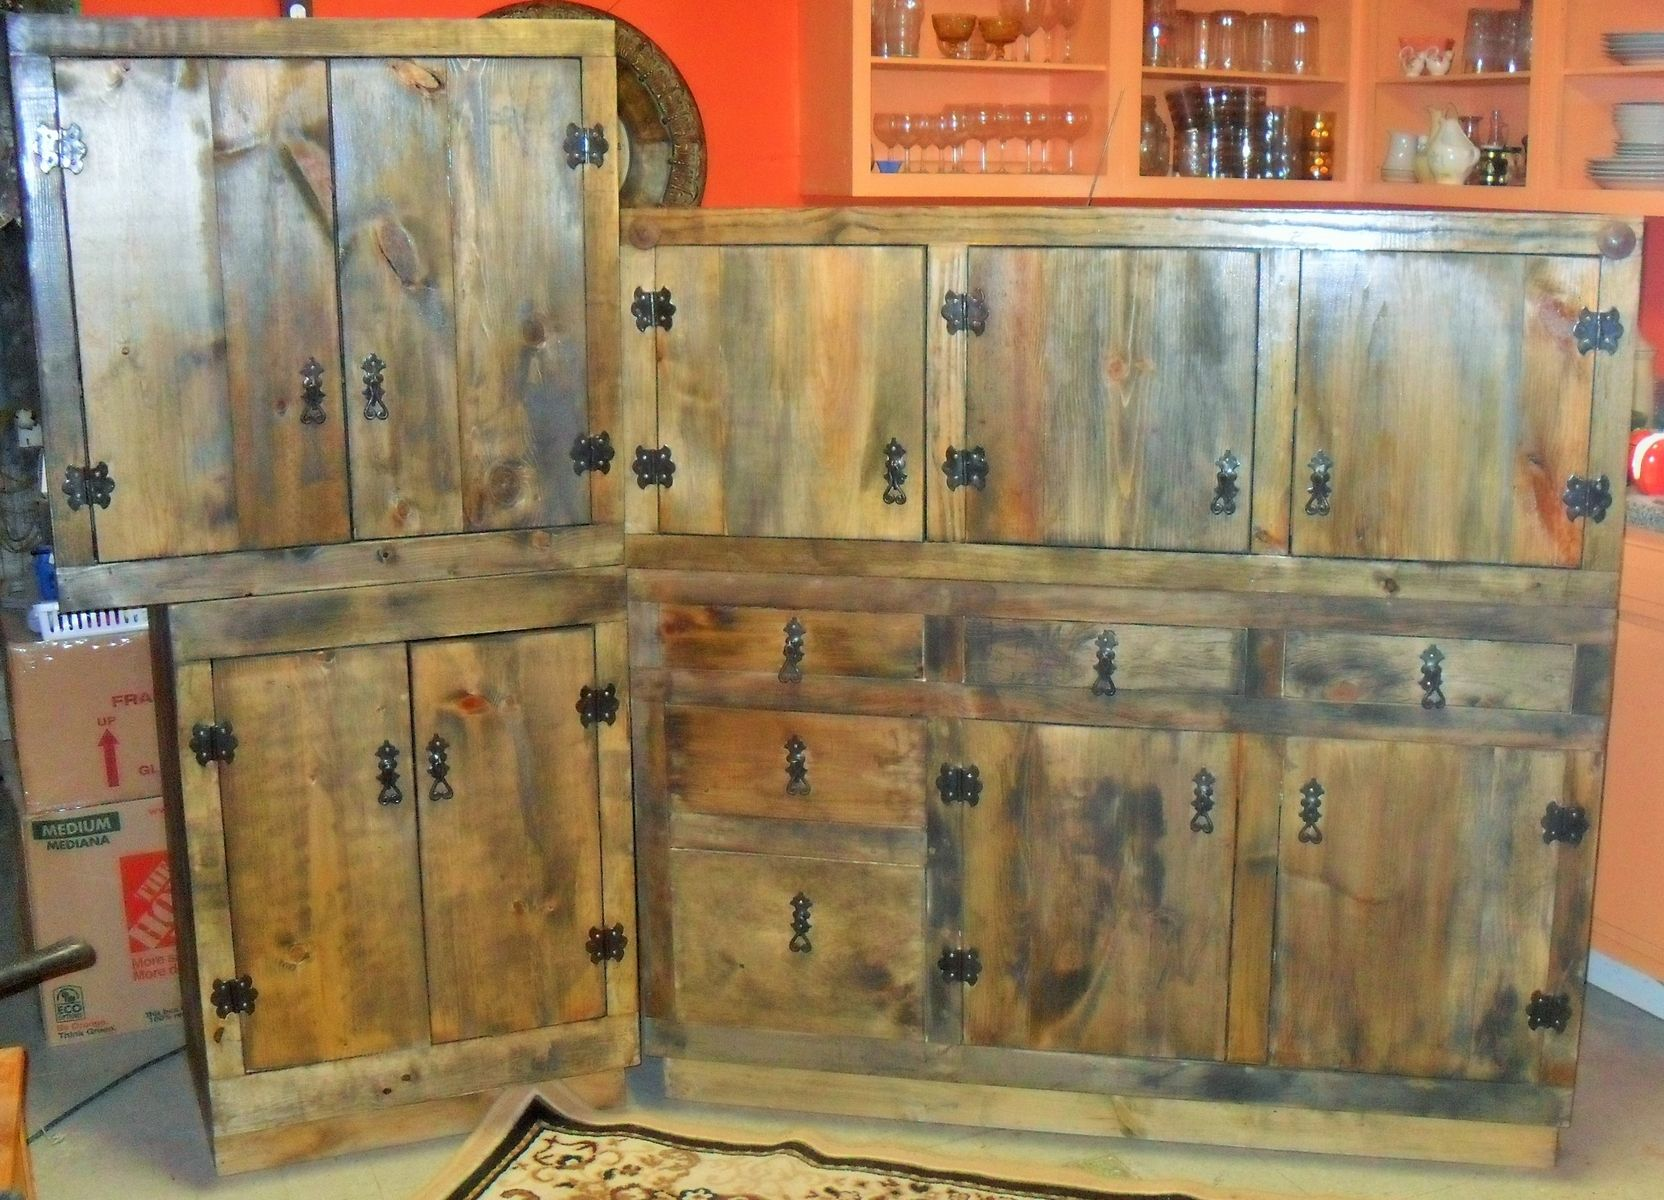 Hand made rustic kitchen cabinets by the bunk house studio for Kitchen cabinets rustic